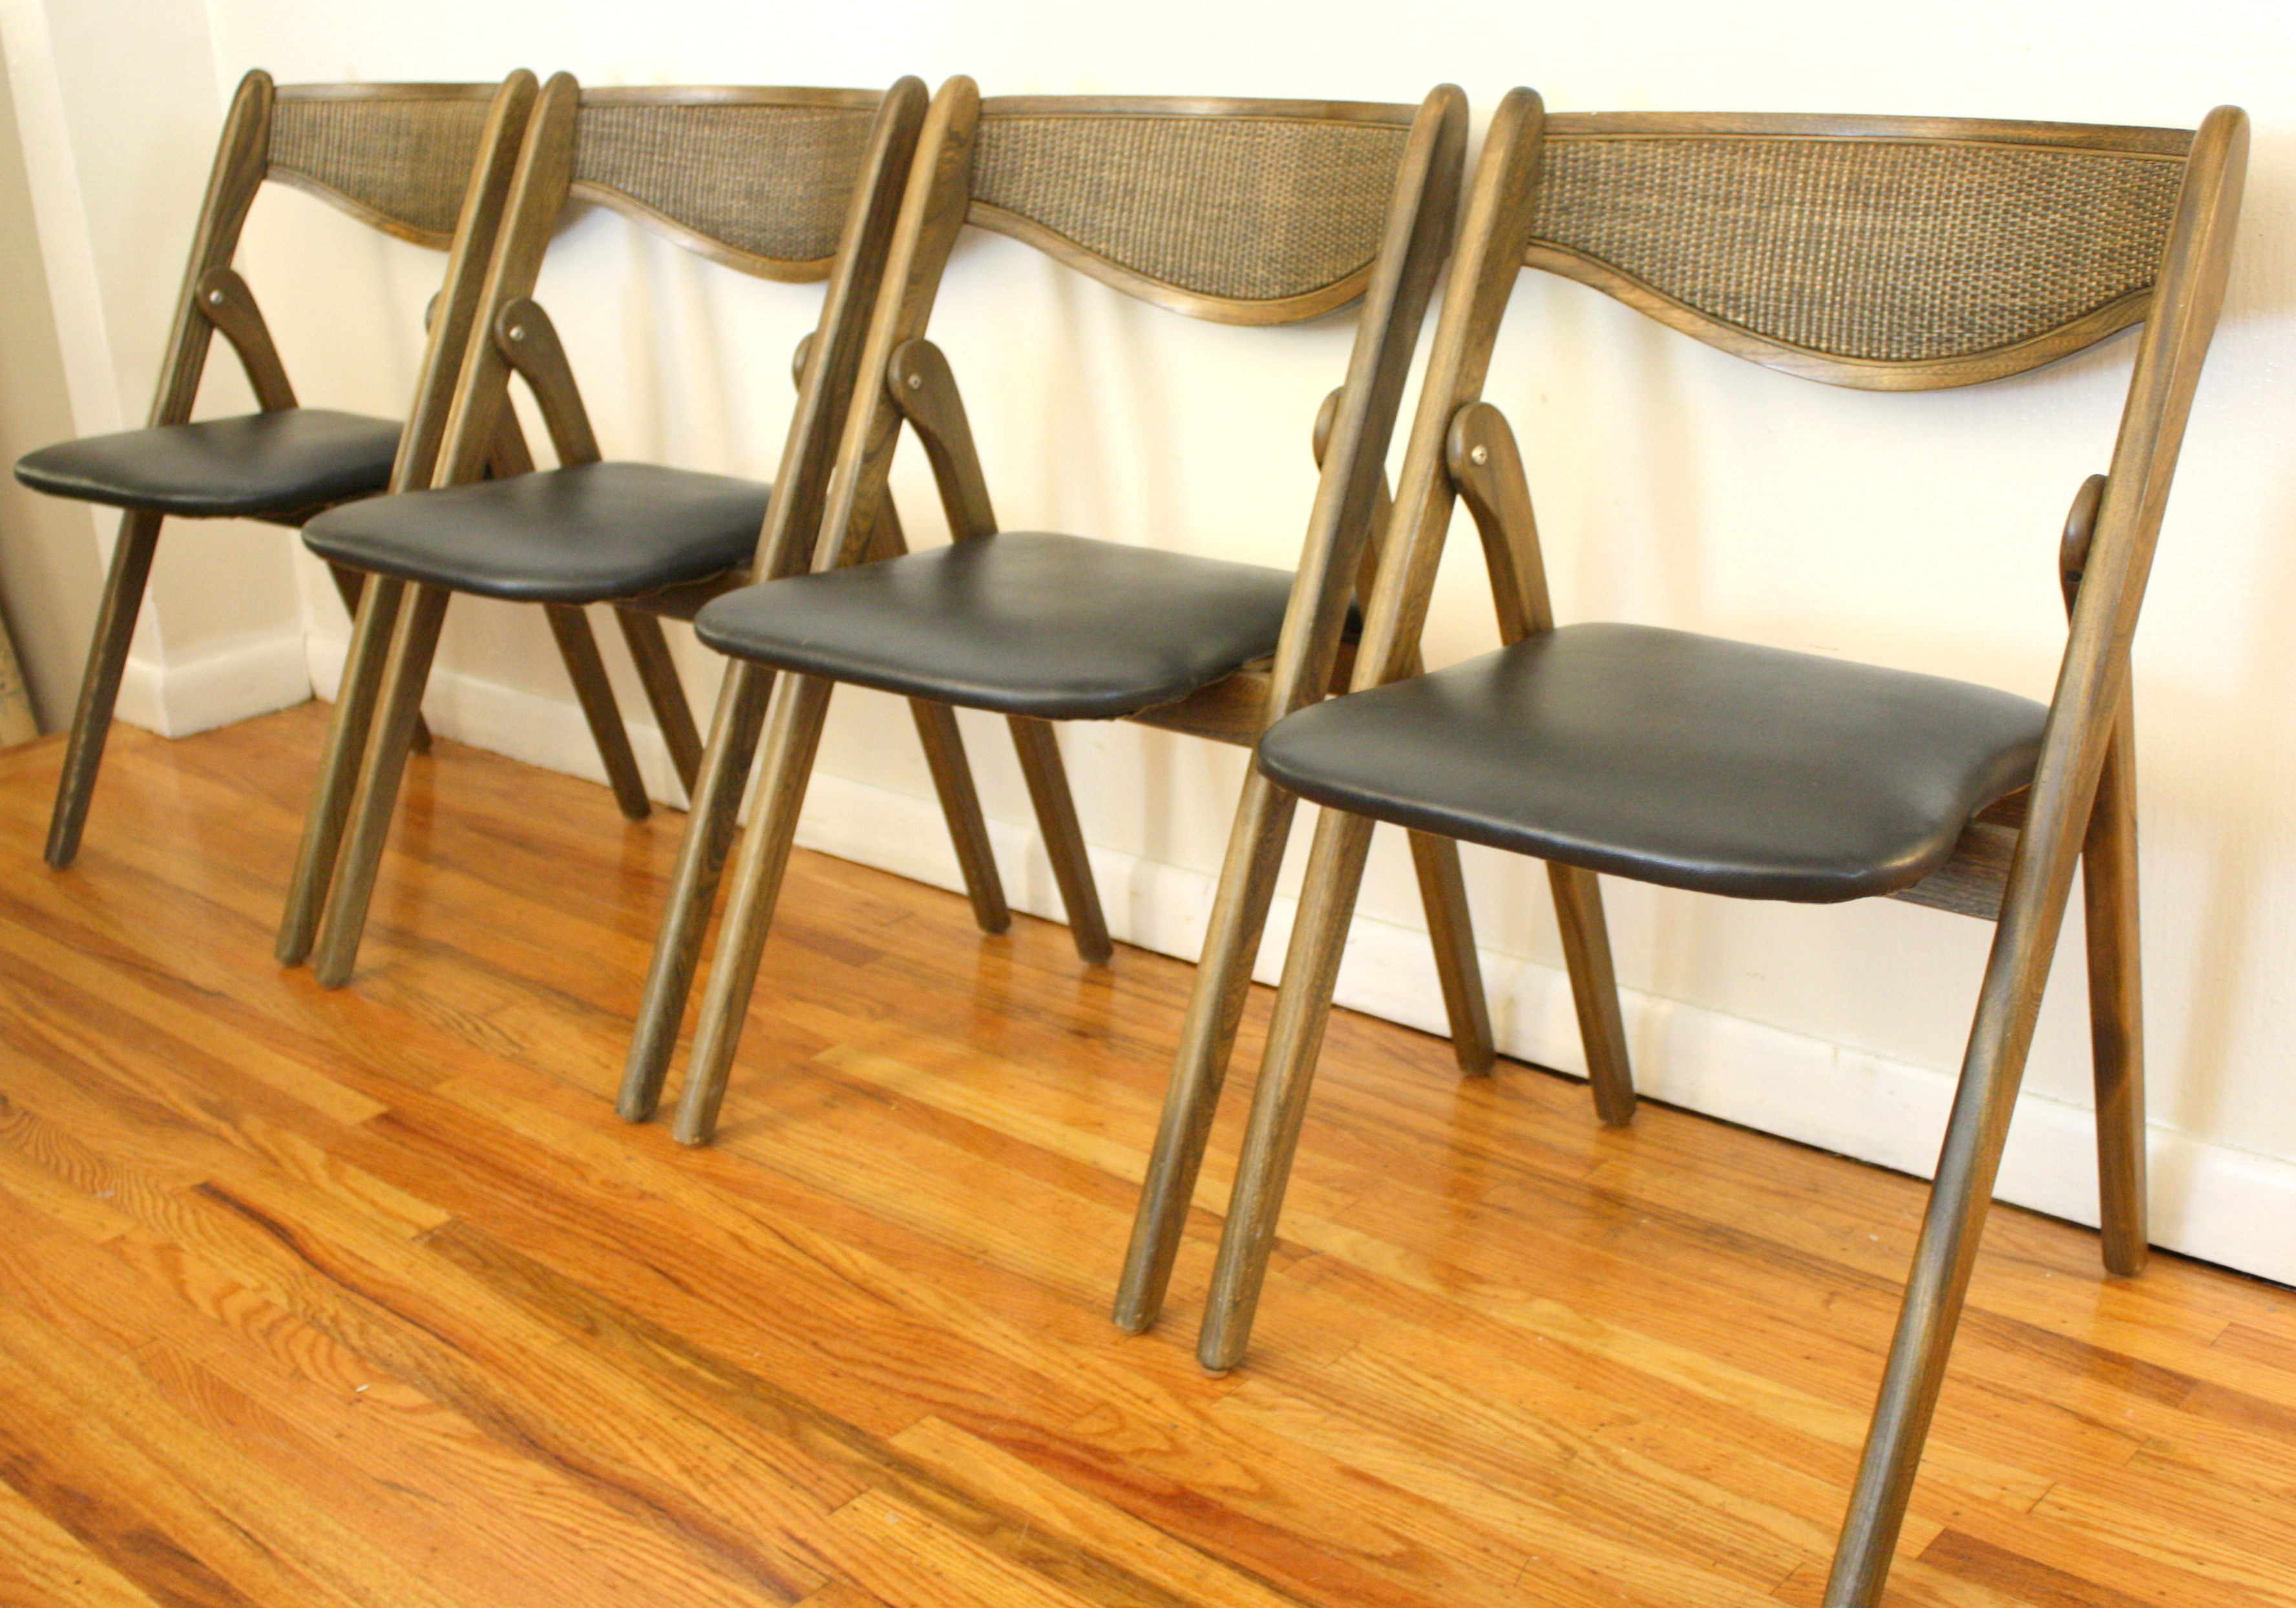 coronet folding chairs average chair cover rental price mid century modern by picked vintage